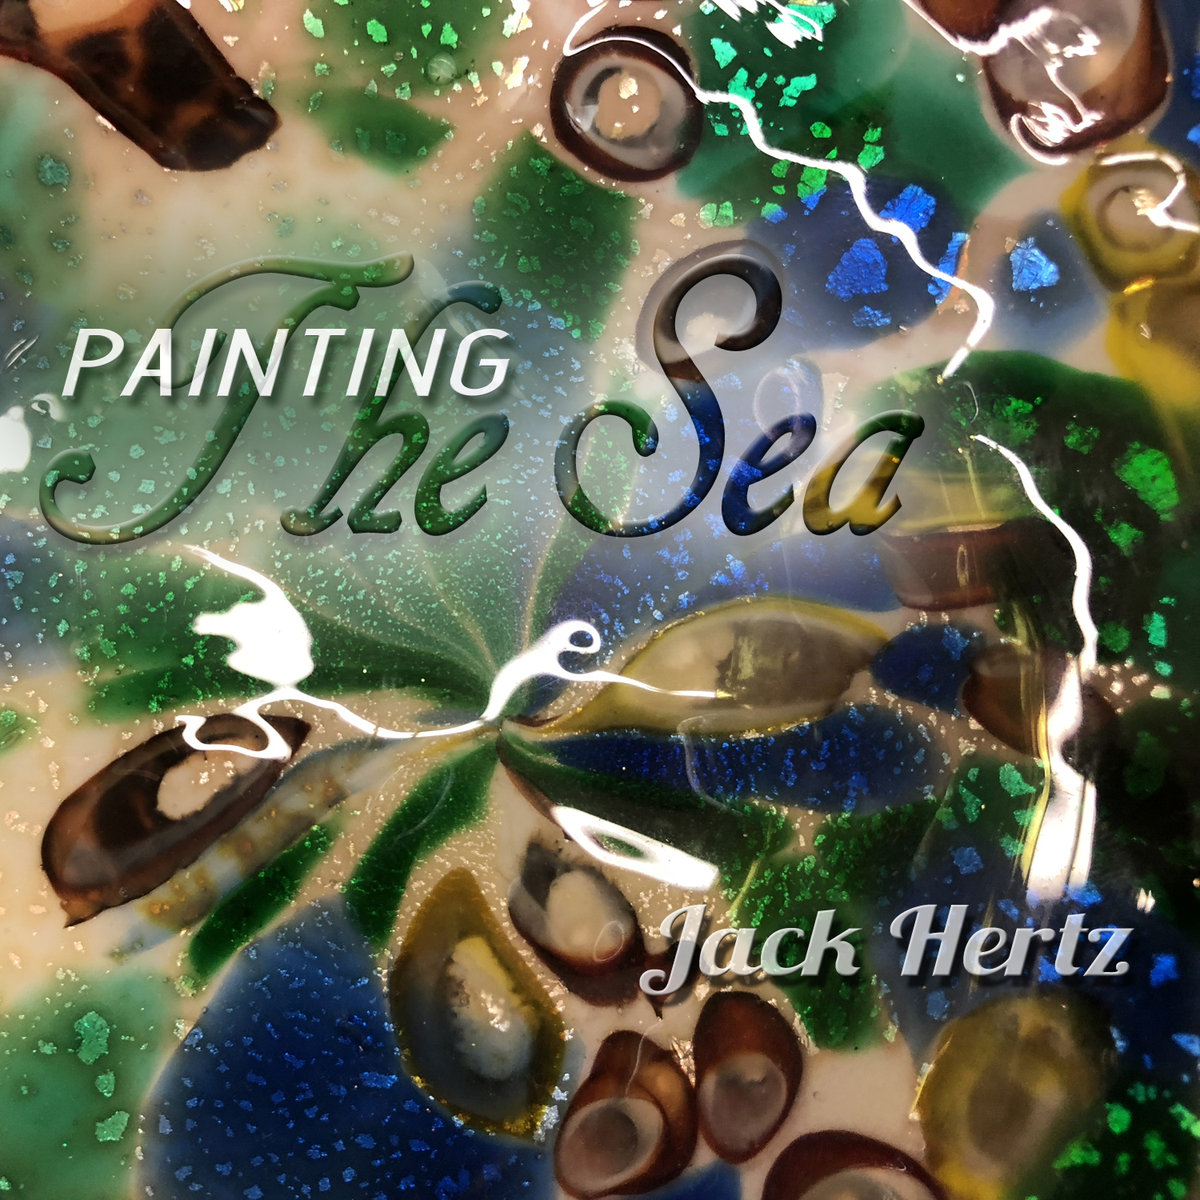 Painting The Sea by Jack Hertz